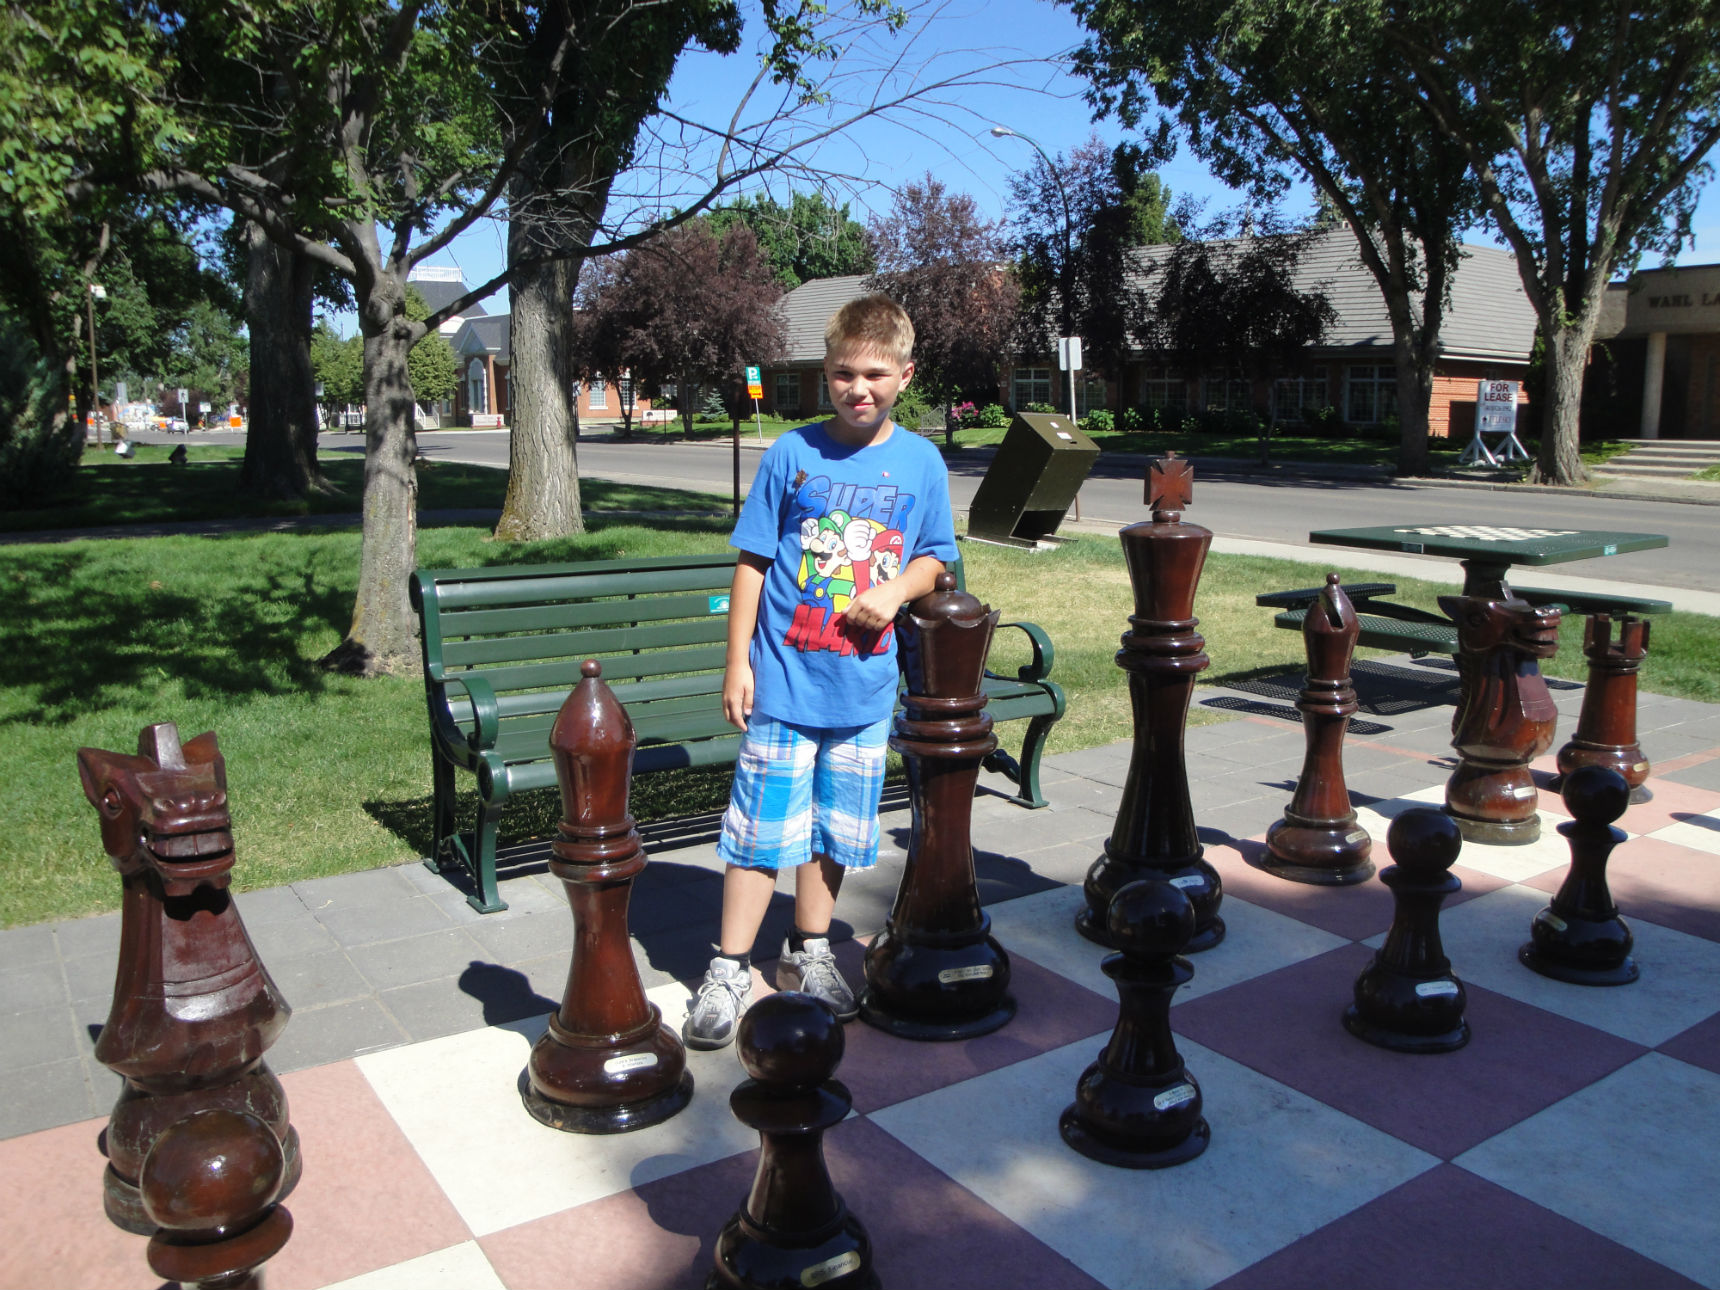 Giantchess set